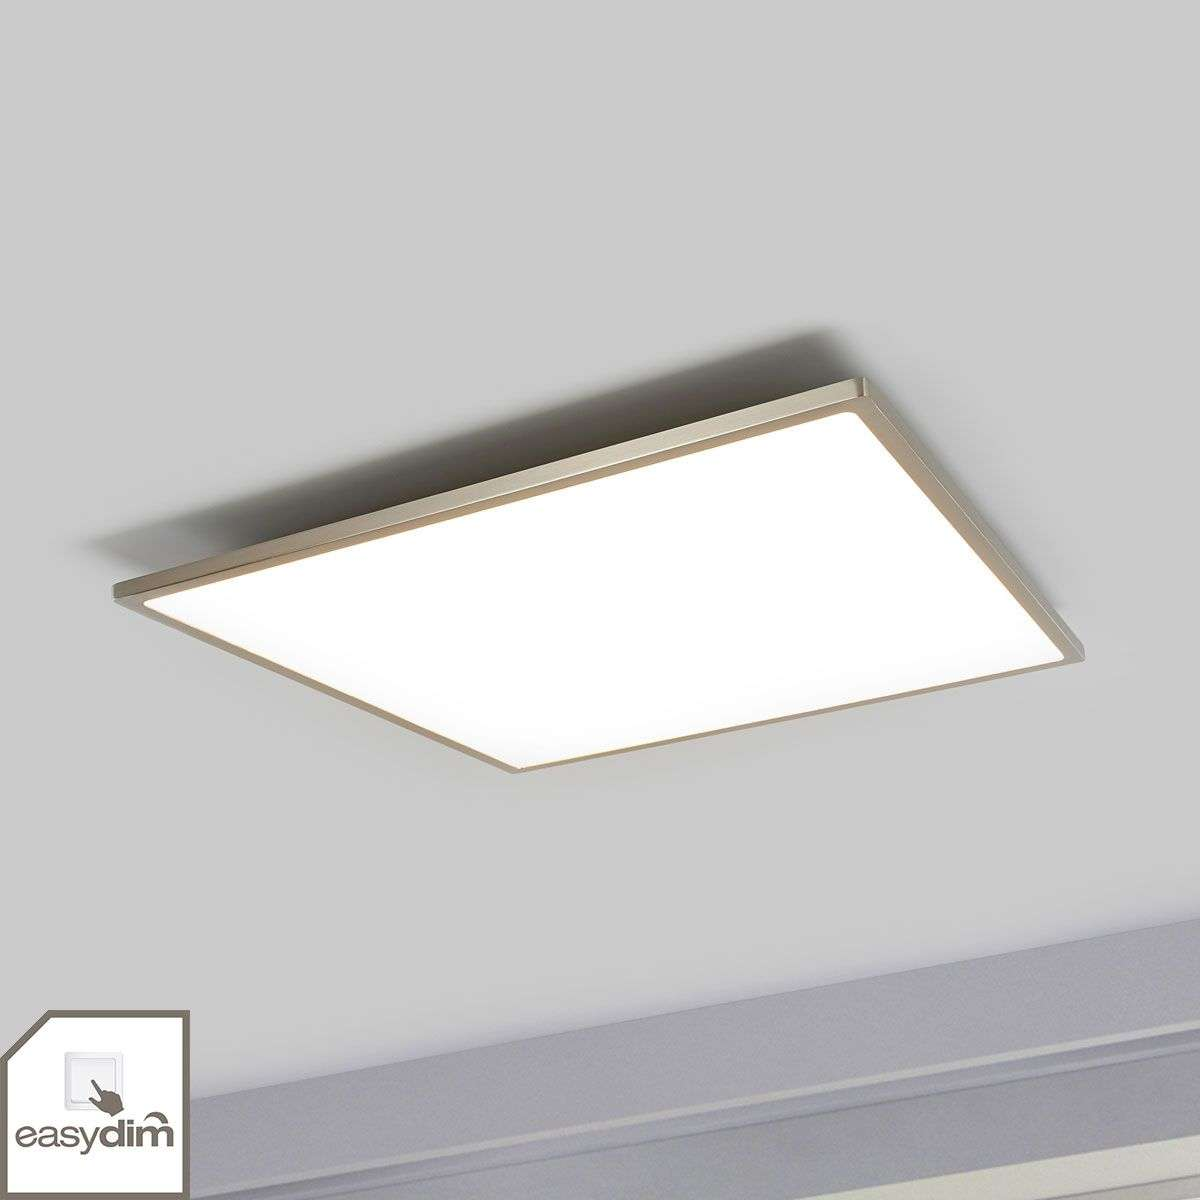 Led Ceiling Lights Company : Easydim led ceiling lamp ceres square lights